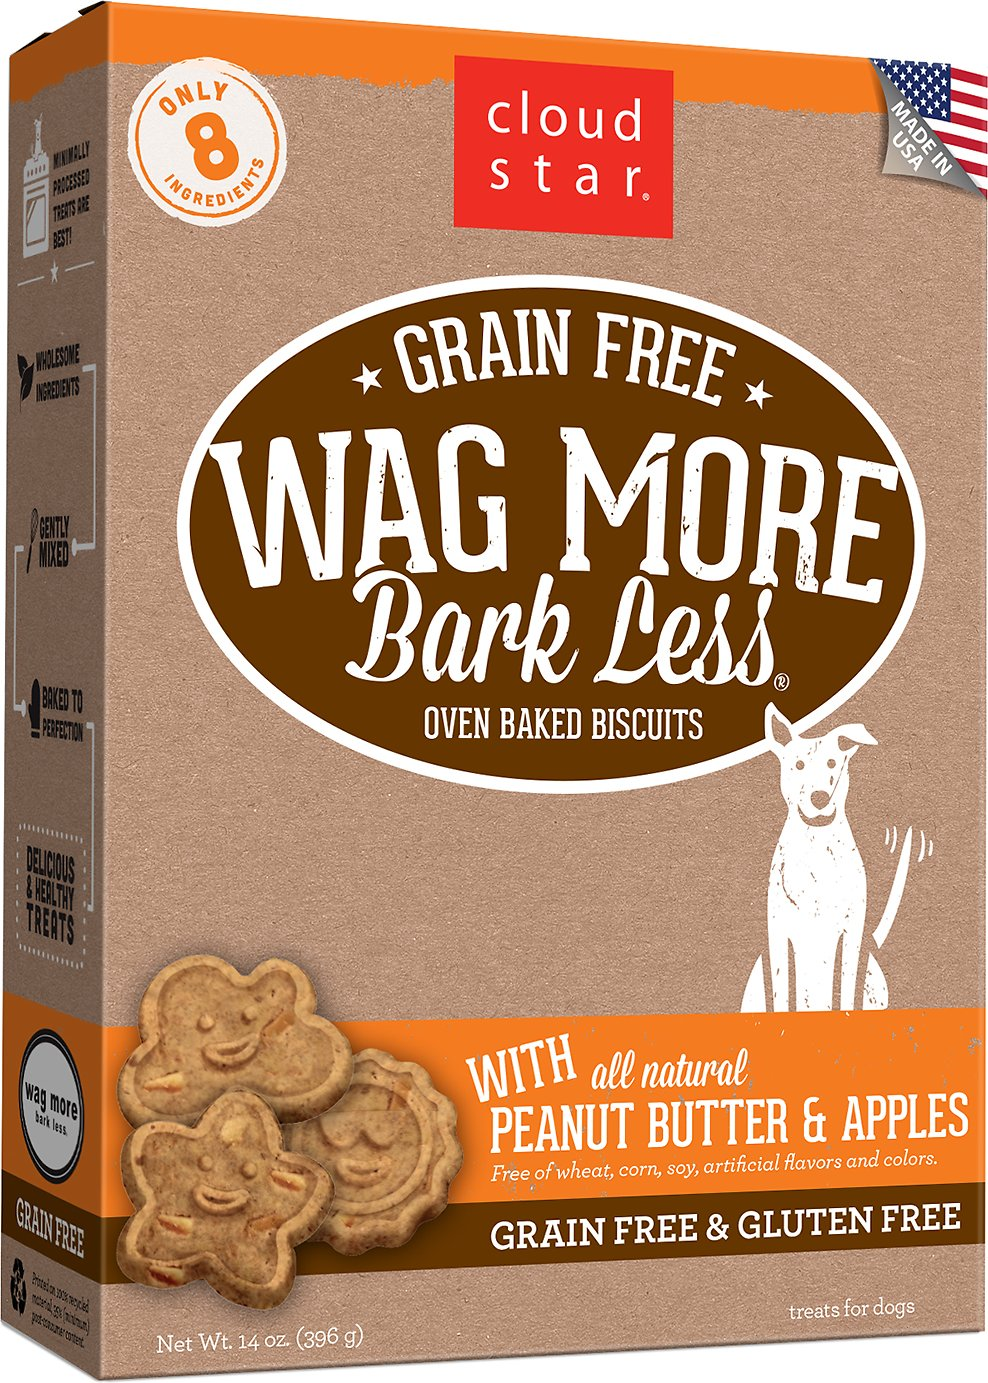 Cloud Star Wag More Bark Less Grain-Free Oven Baked with Peanut Butter & Apples Dog Treats Image